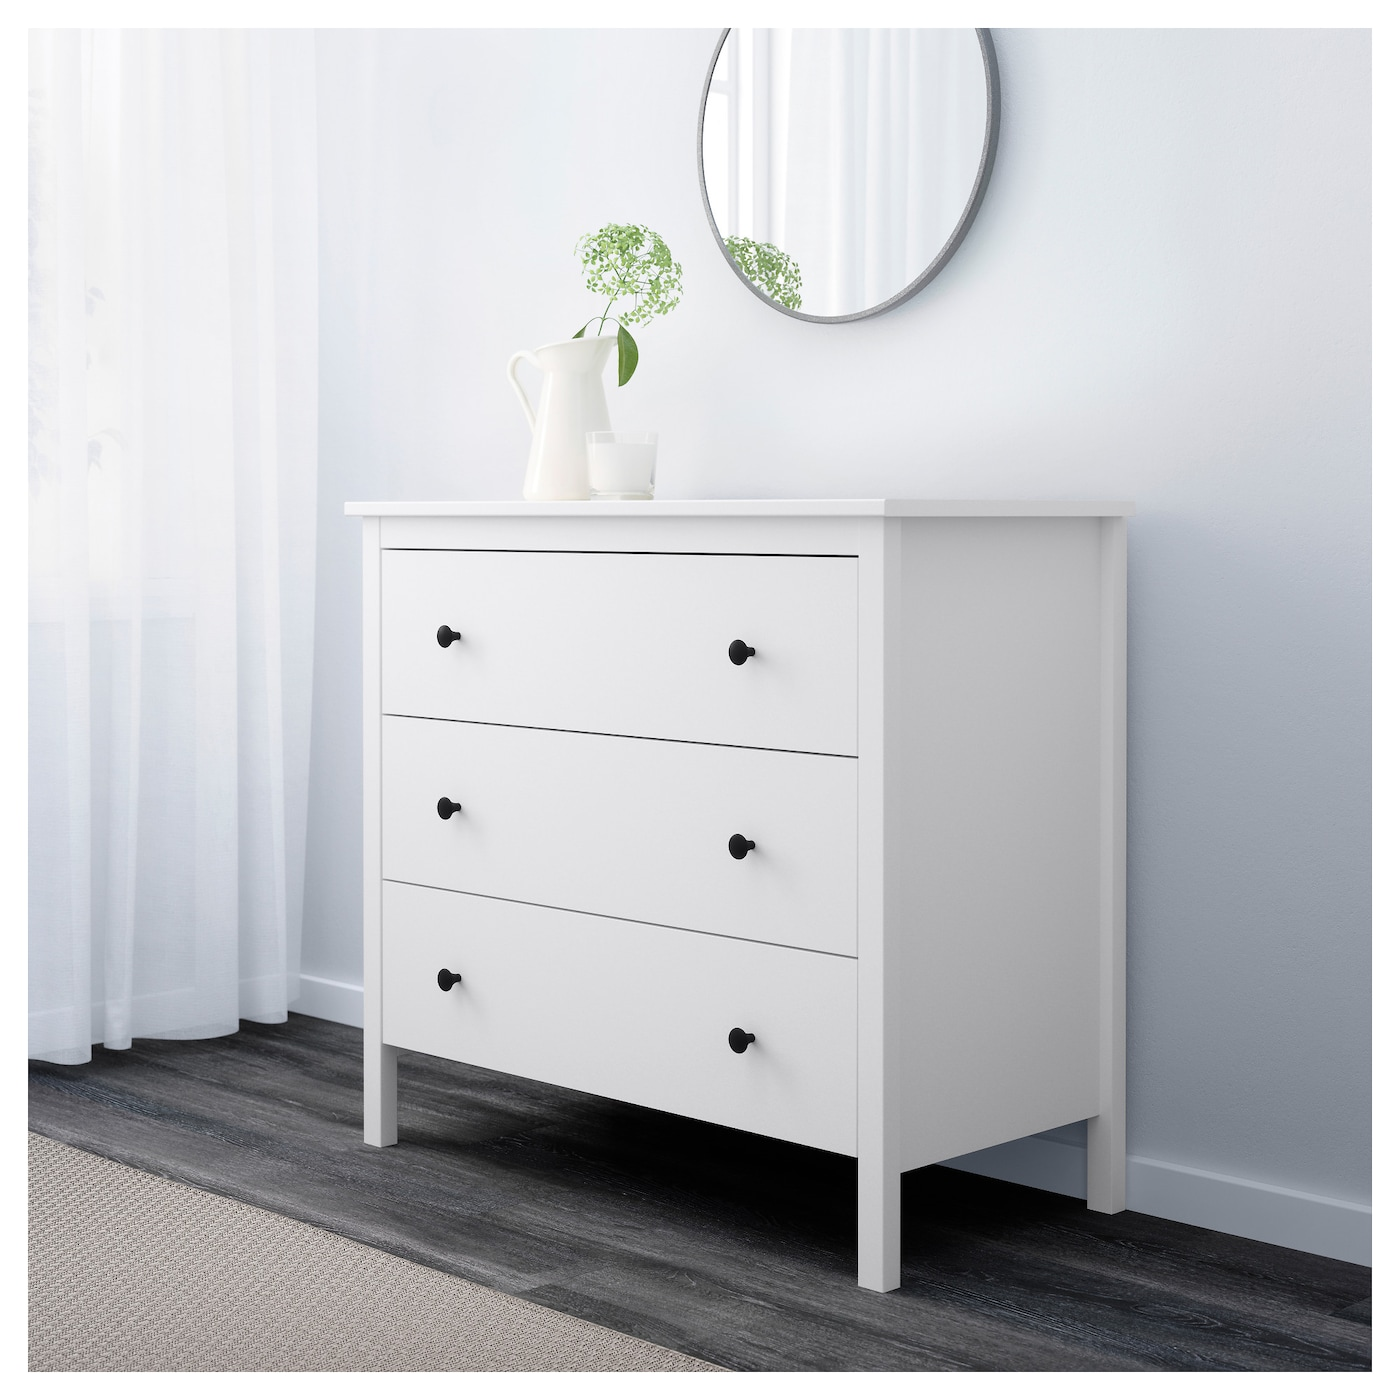 #67804B KOPPANG Chest Of 3 Drawers White 90x82 Cm IKEA with 2000x2000 px of Brand New Ikea 3 Drawer Dresser White 20002000 pic @ avoidforclosure.info